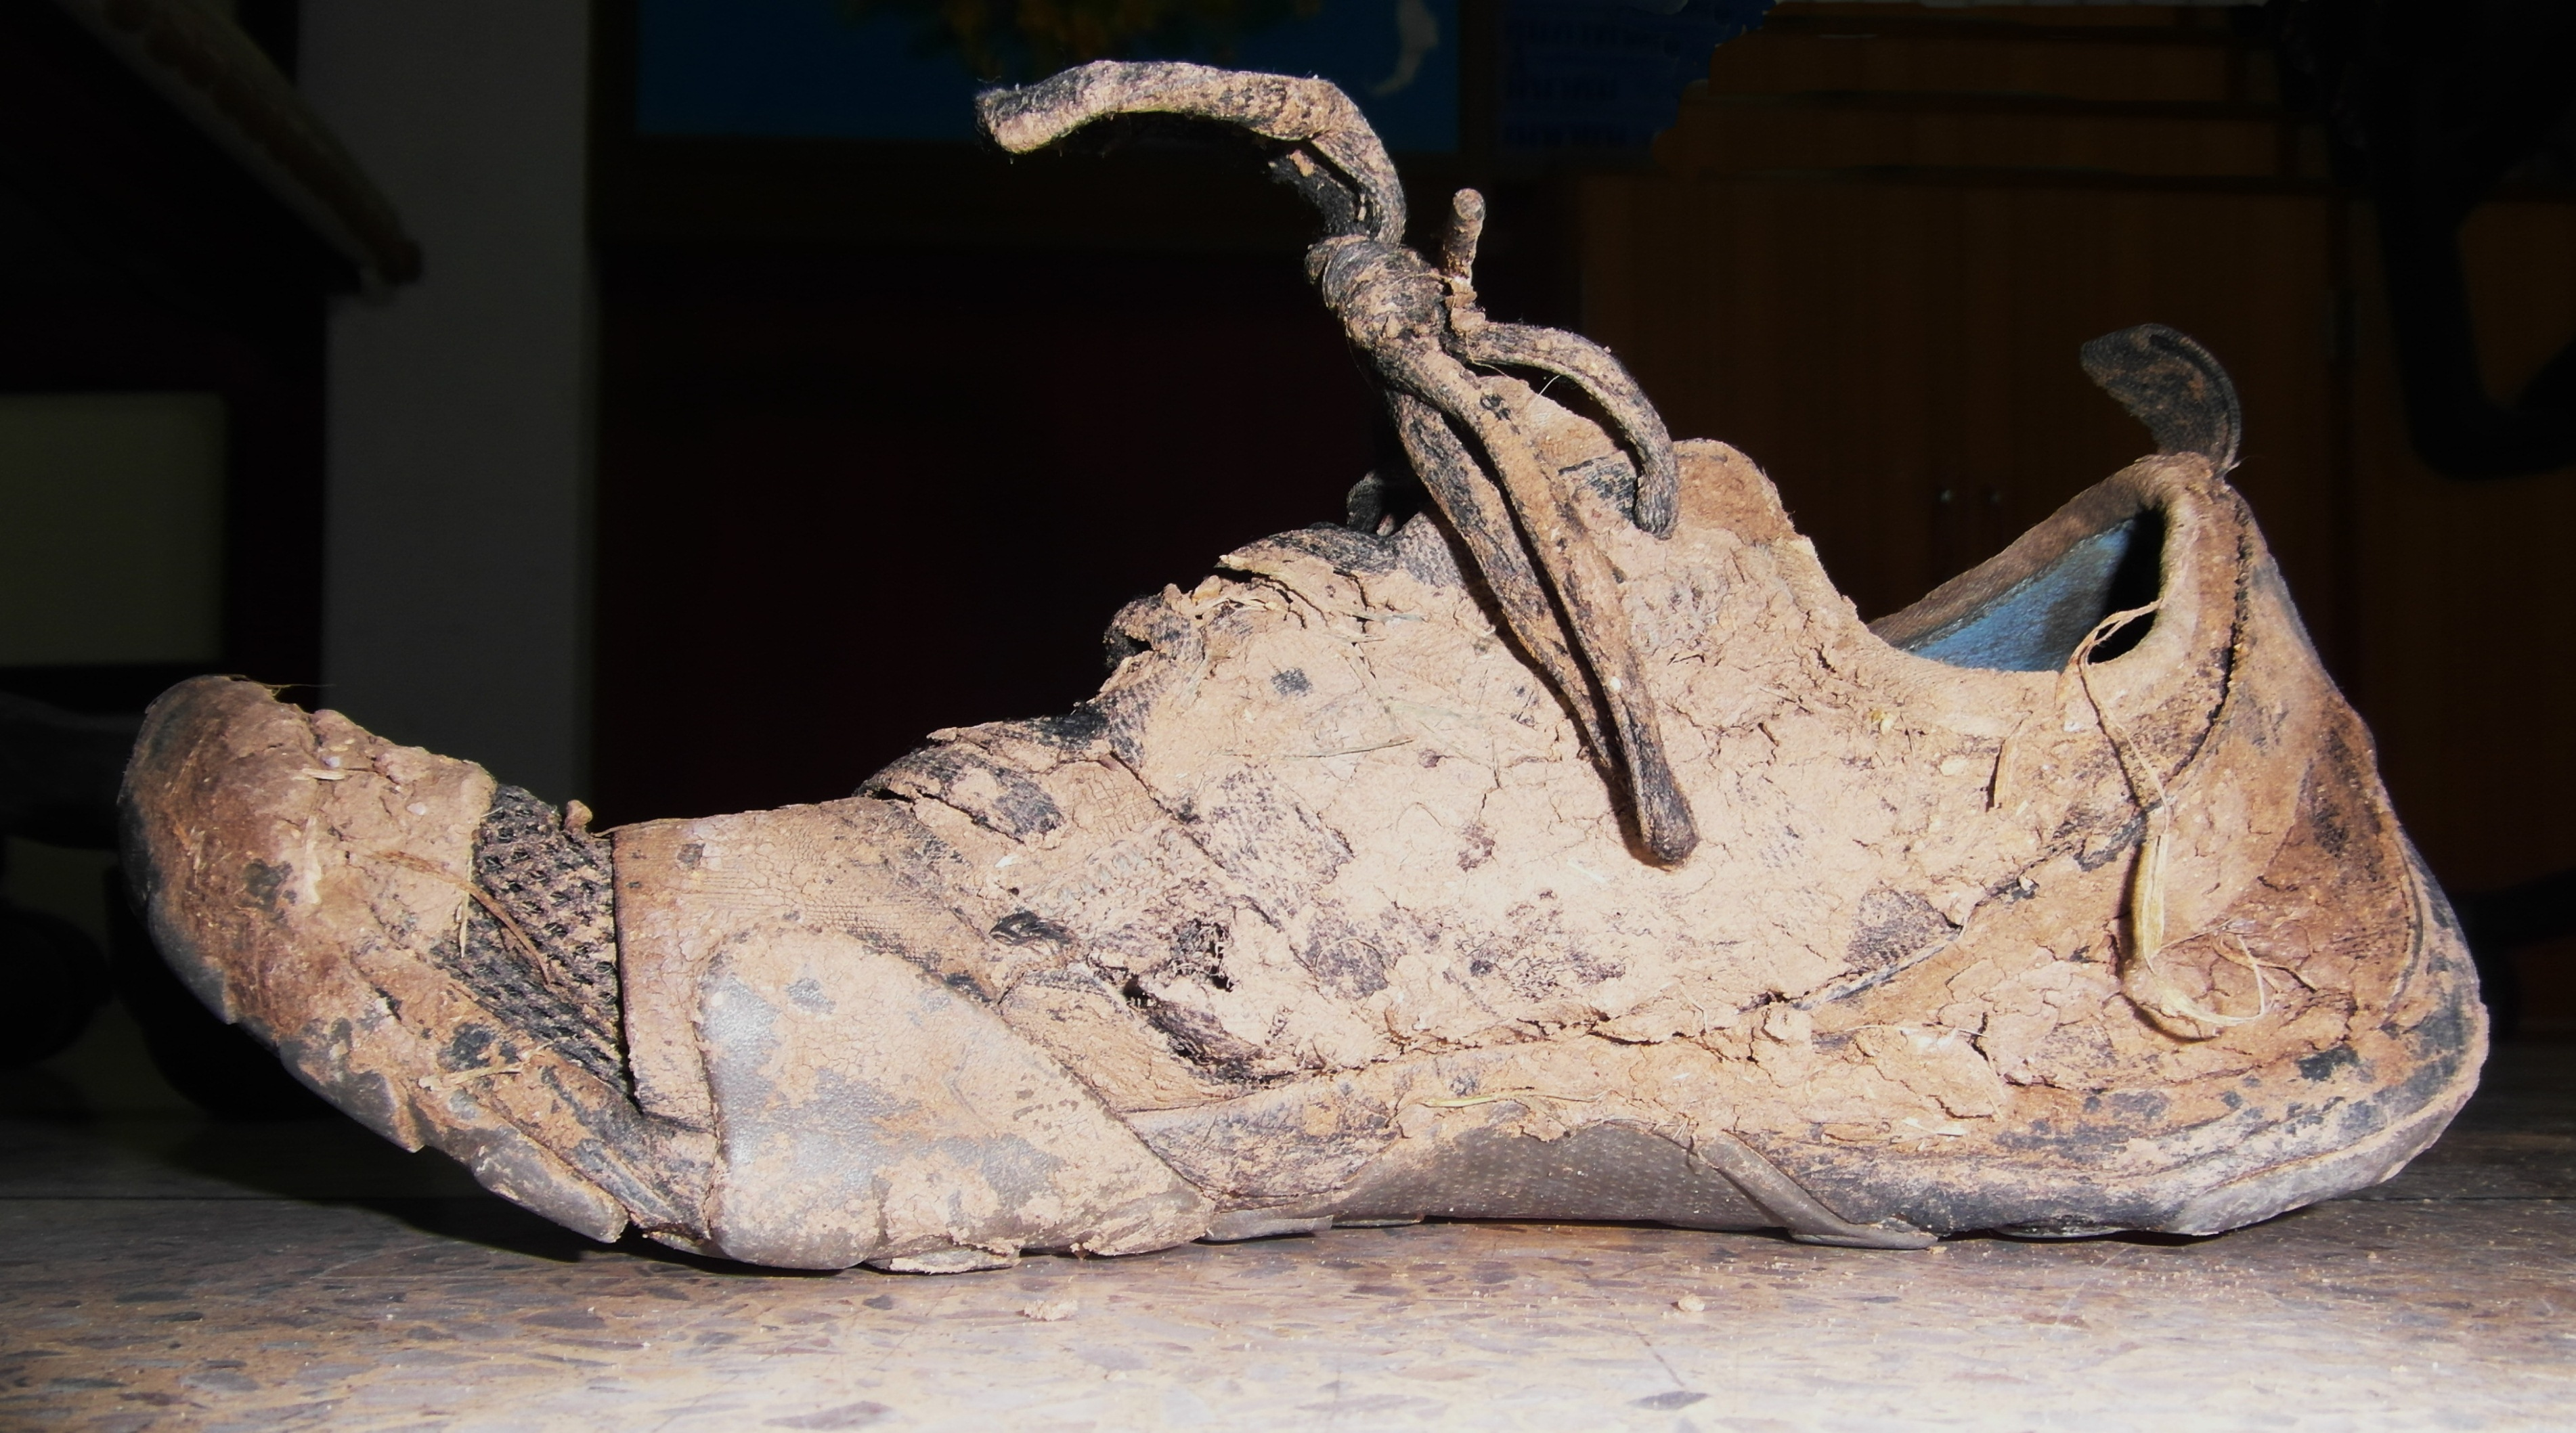 Muddy sport shoe photo